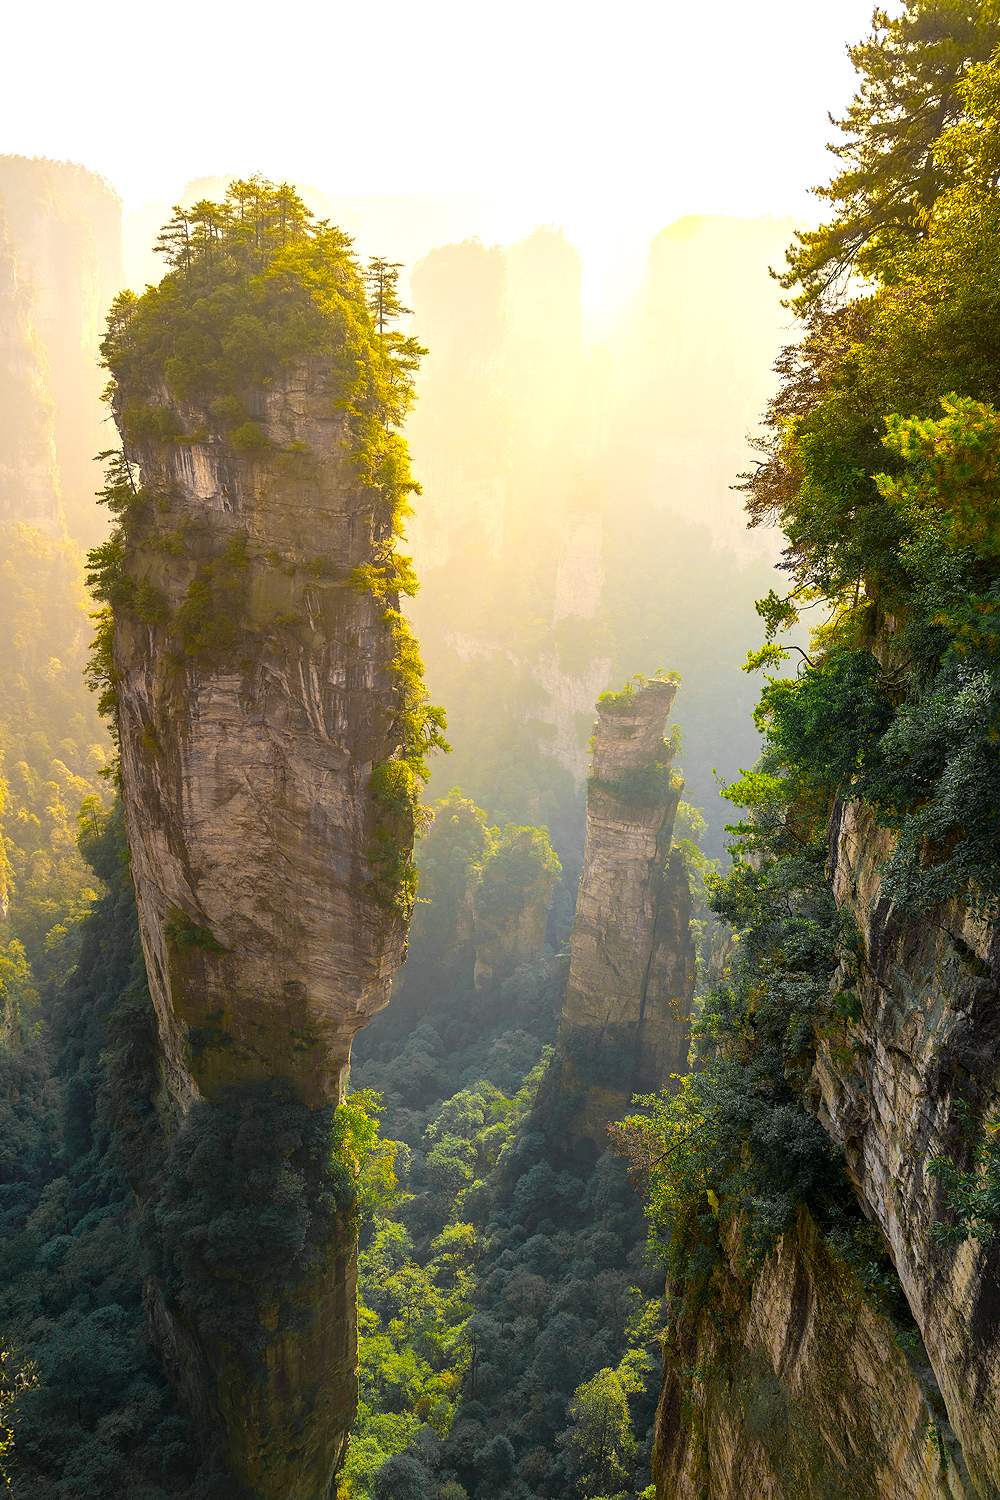 Avatar Mountains - Zhangjiajie National Forest Park - China © PhotoTravelNomads.com